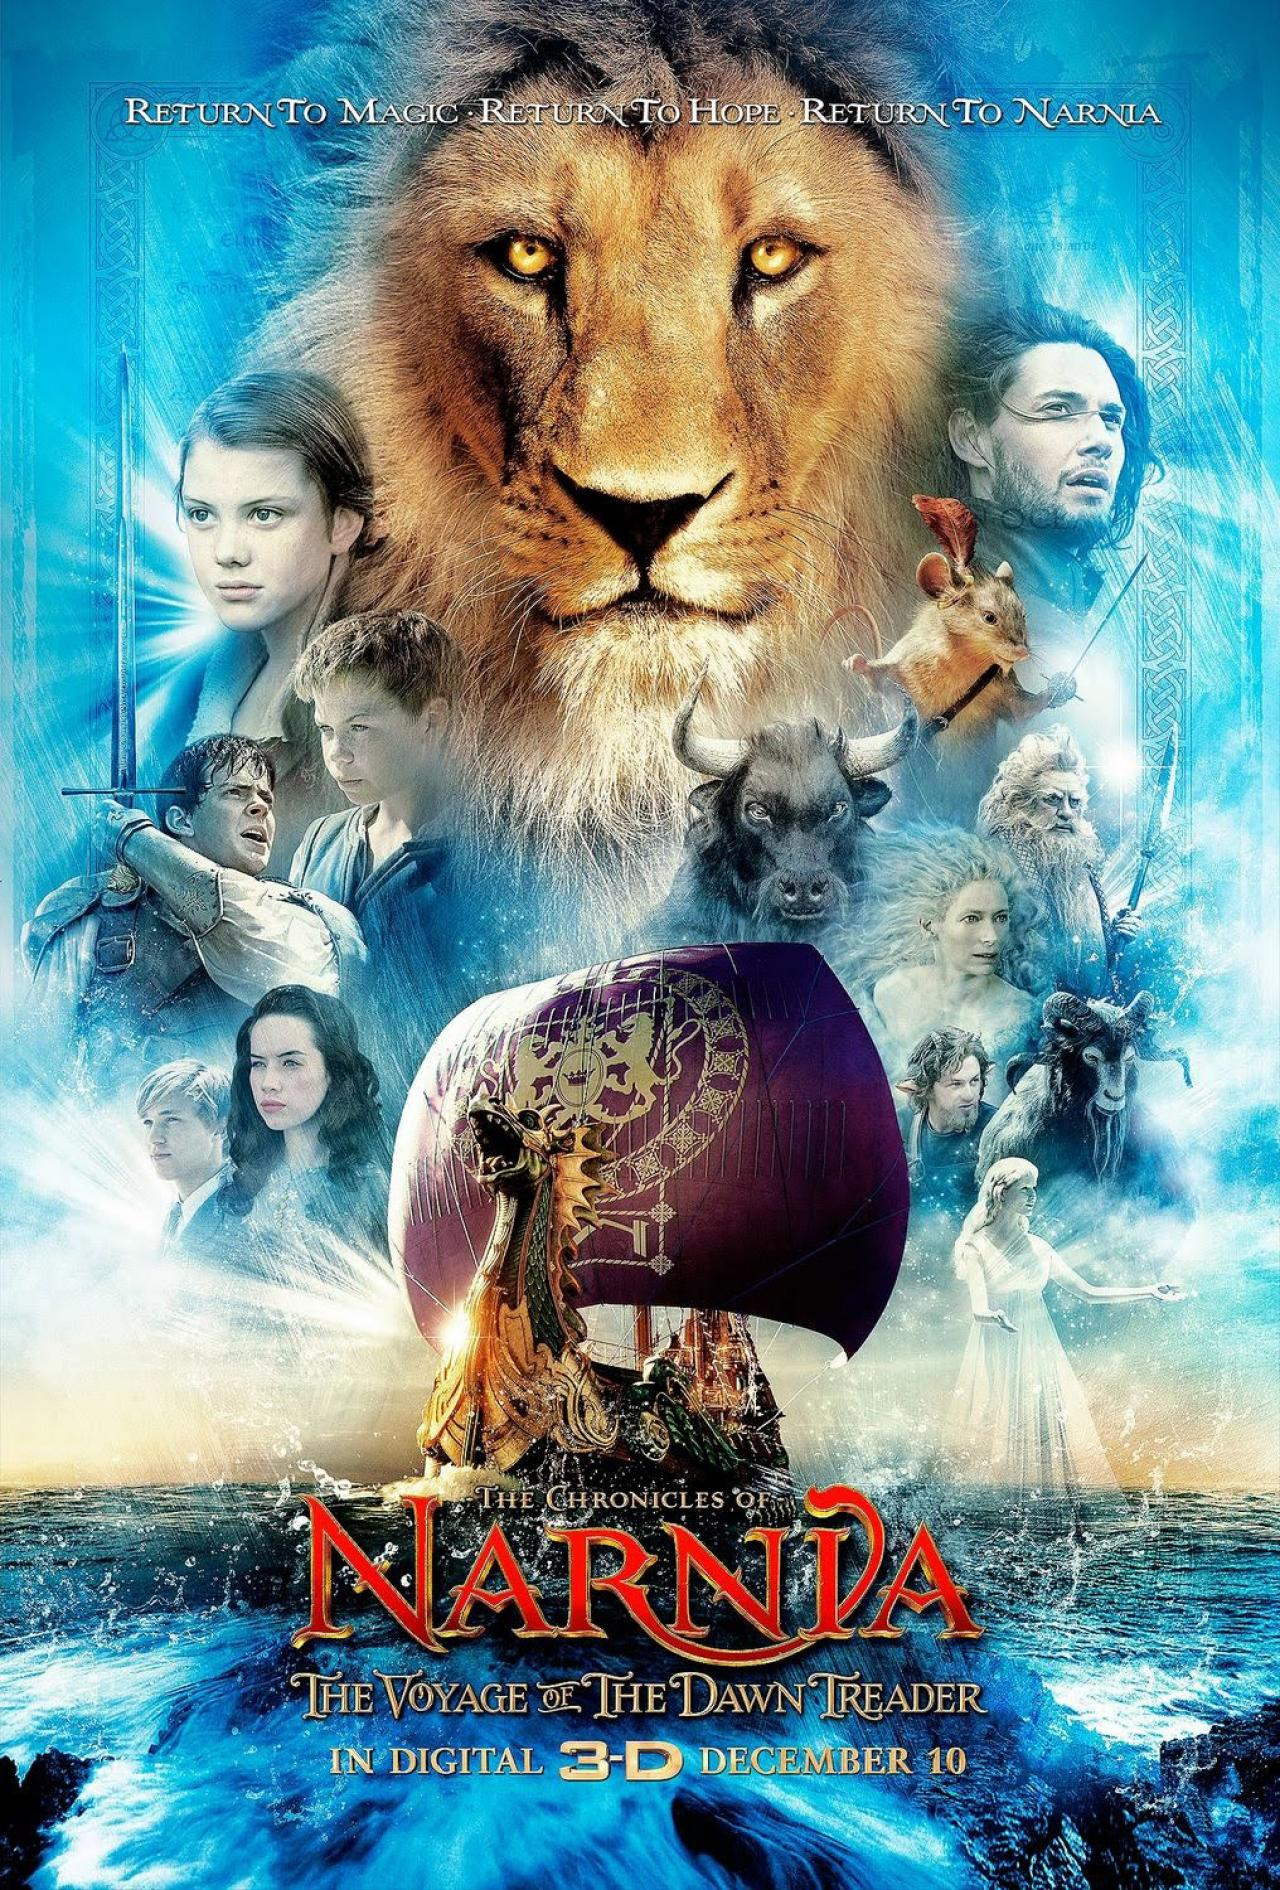 the chronicles of narnia silver chair wedding covers and sashes for hire near me 4 magical new posters voyage dawn